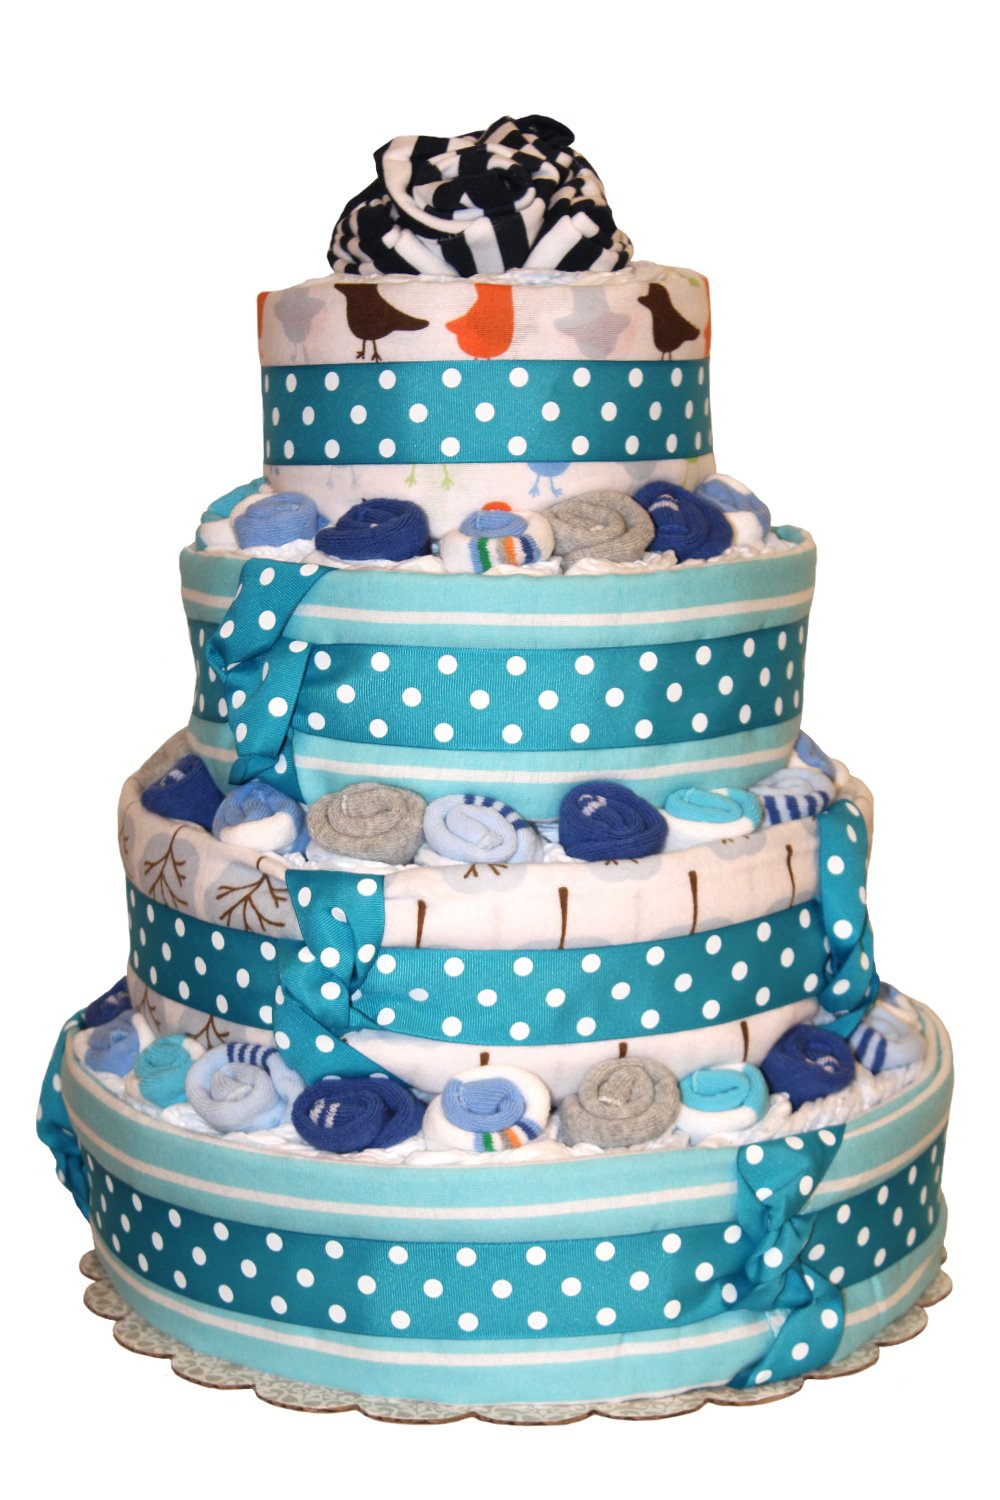 QBabyShowering Classic Blue 4 Tier Diaper Cake For Baby Boy Shower - Diaper Cake made out of 2 Onesies, 25 Pairs Of Newborn Socks, 6 Receiving Blankets, 105 Diapers (Stripe Midnight White)